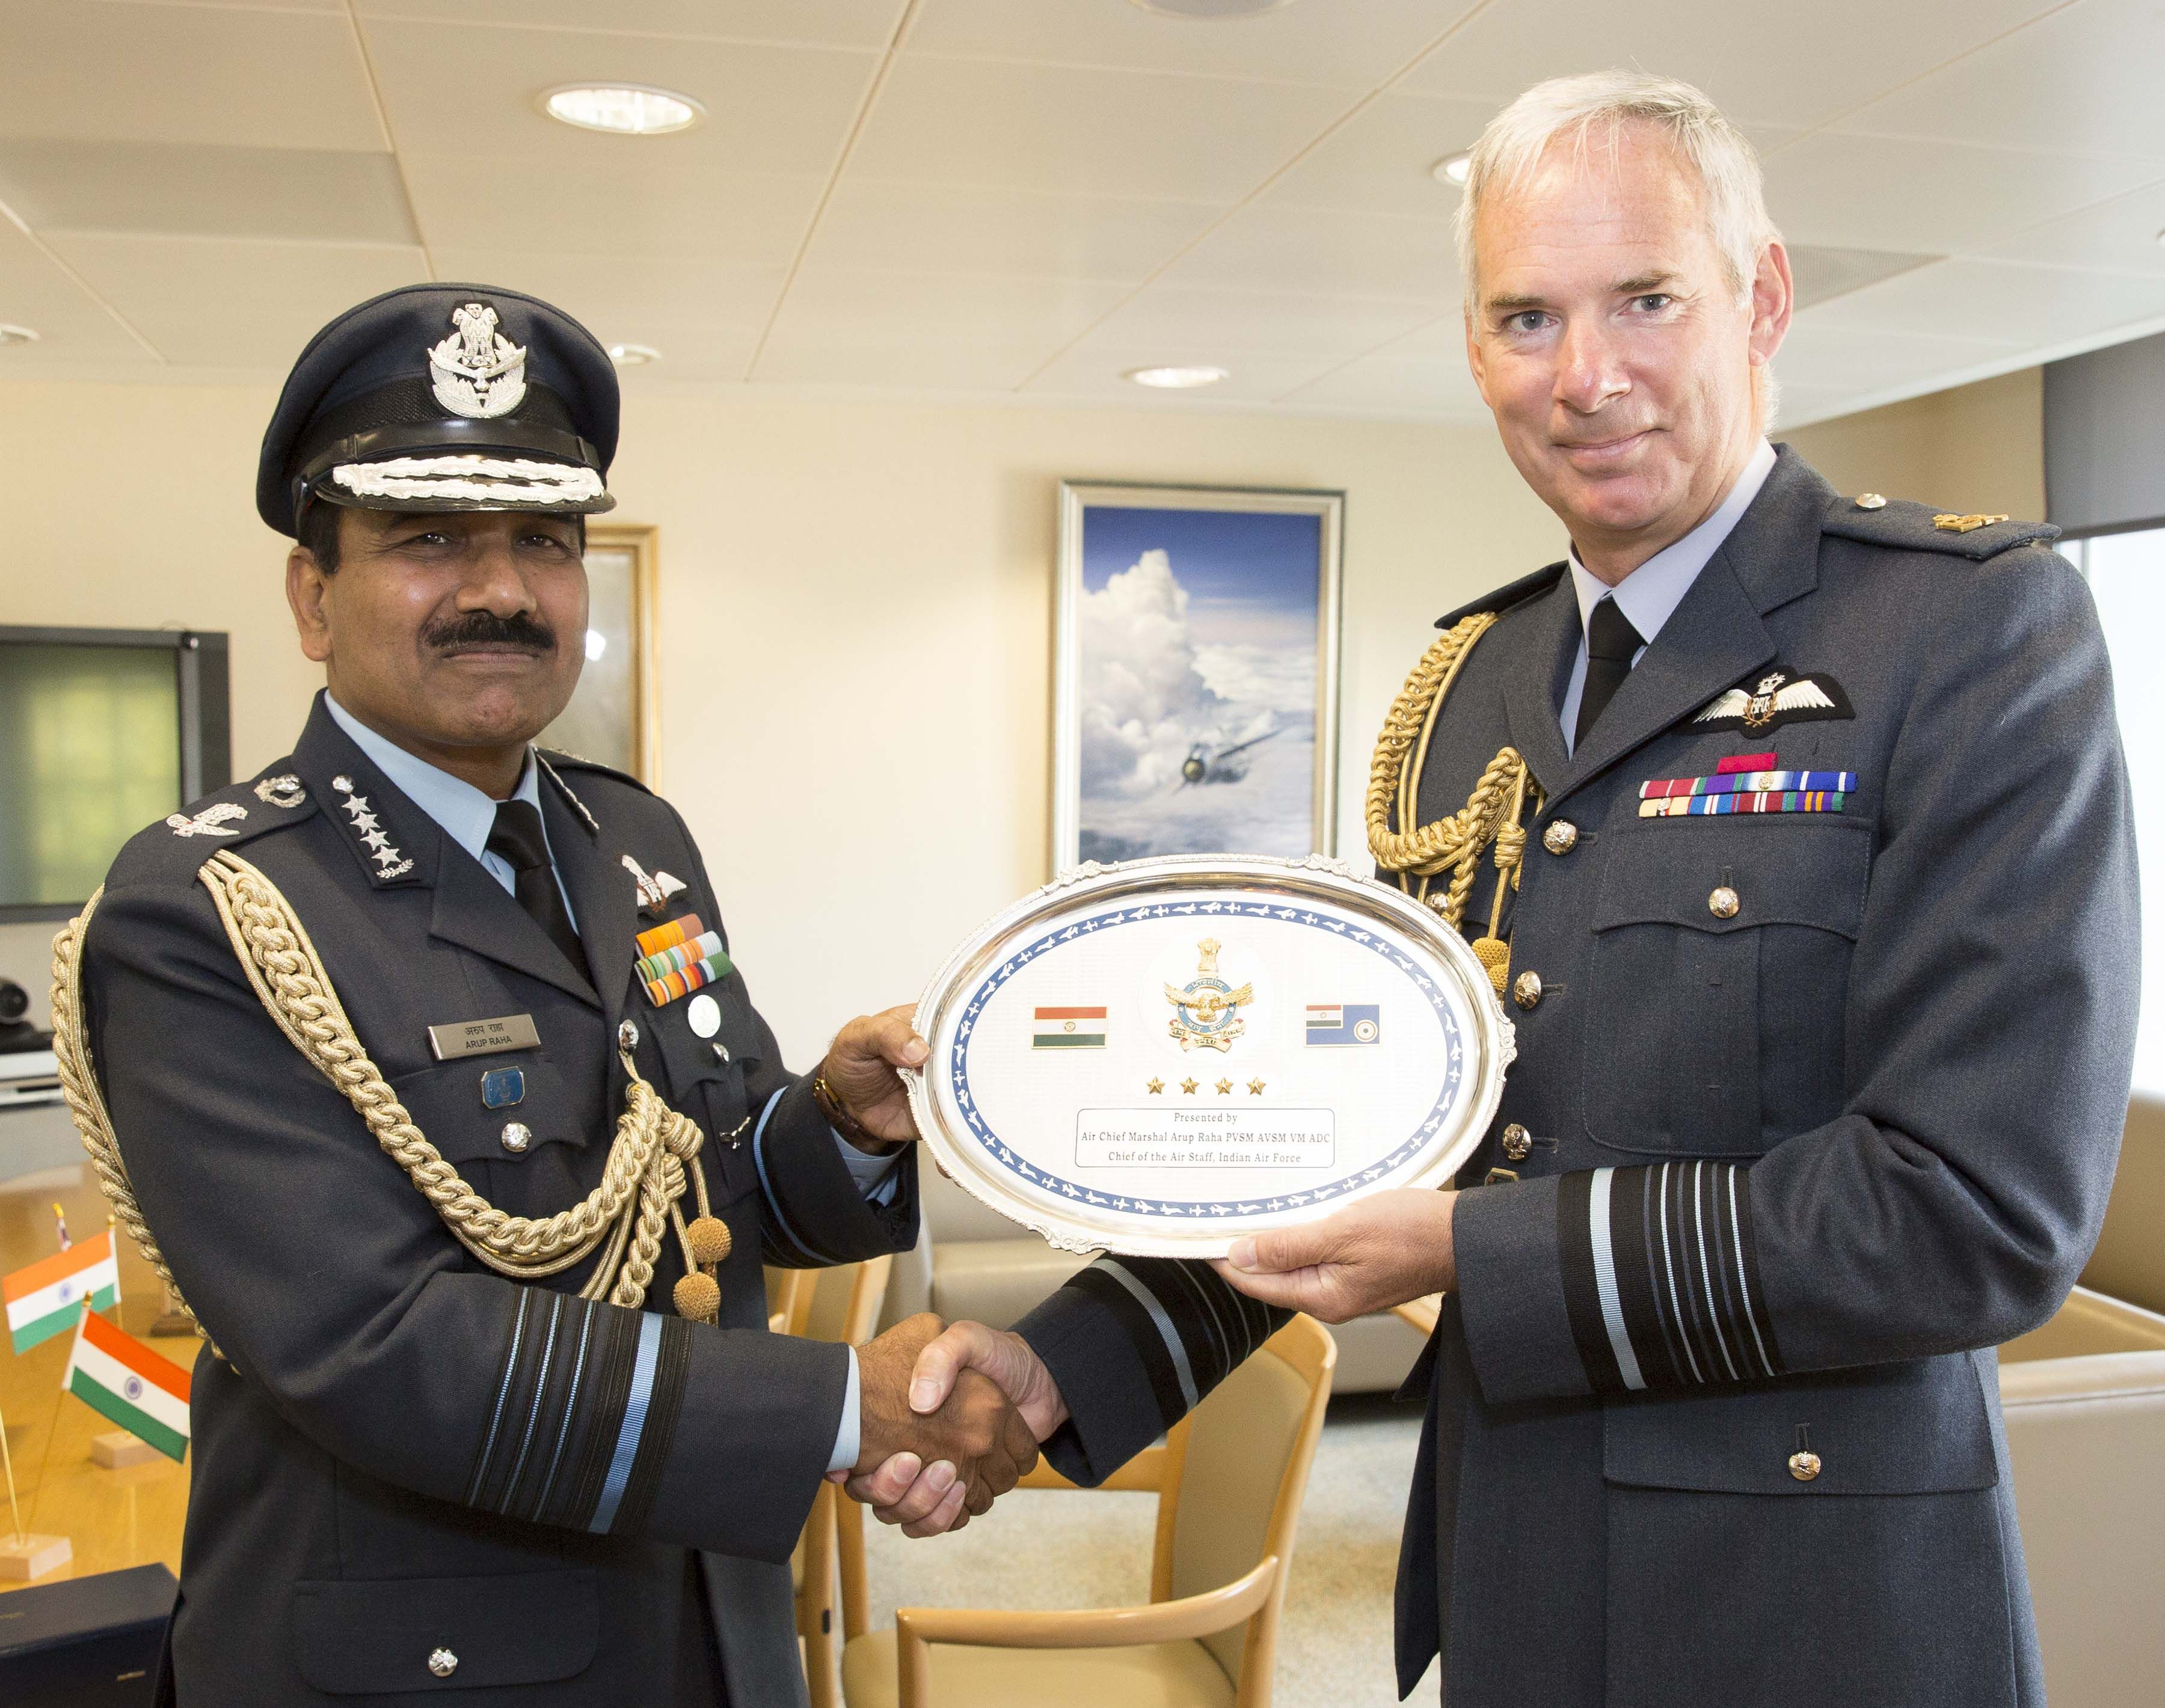 Air Chief visit to the United Kingdom